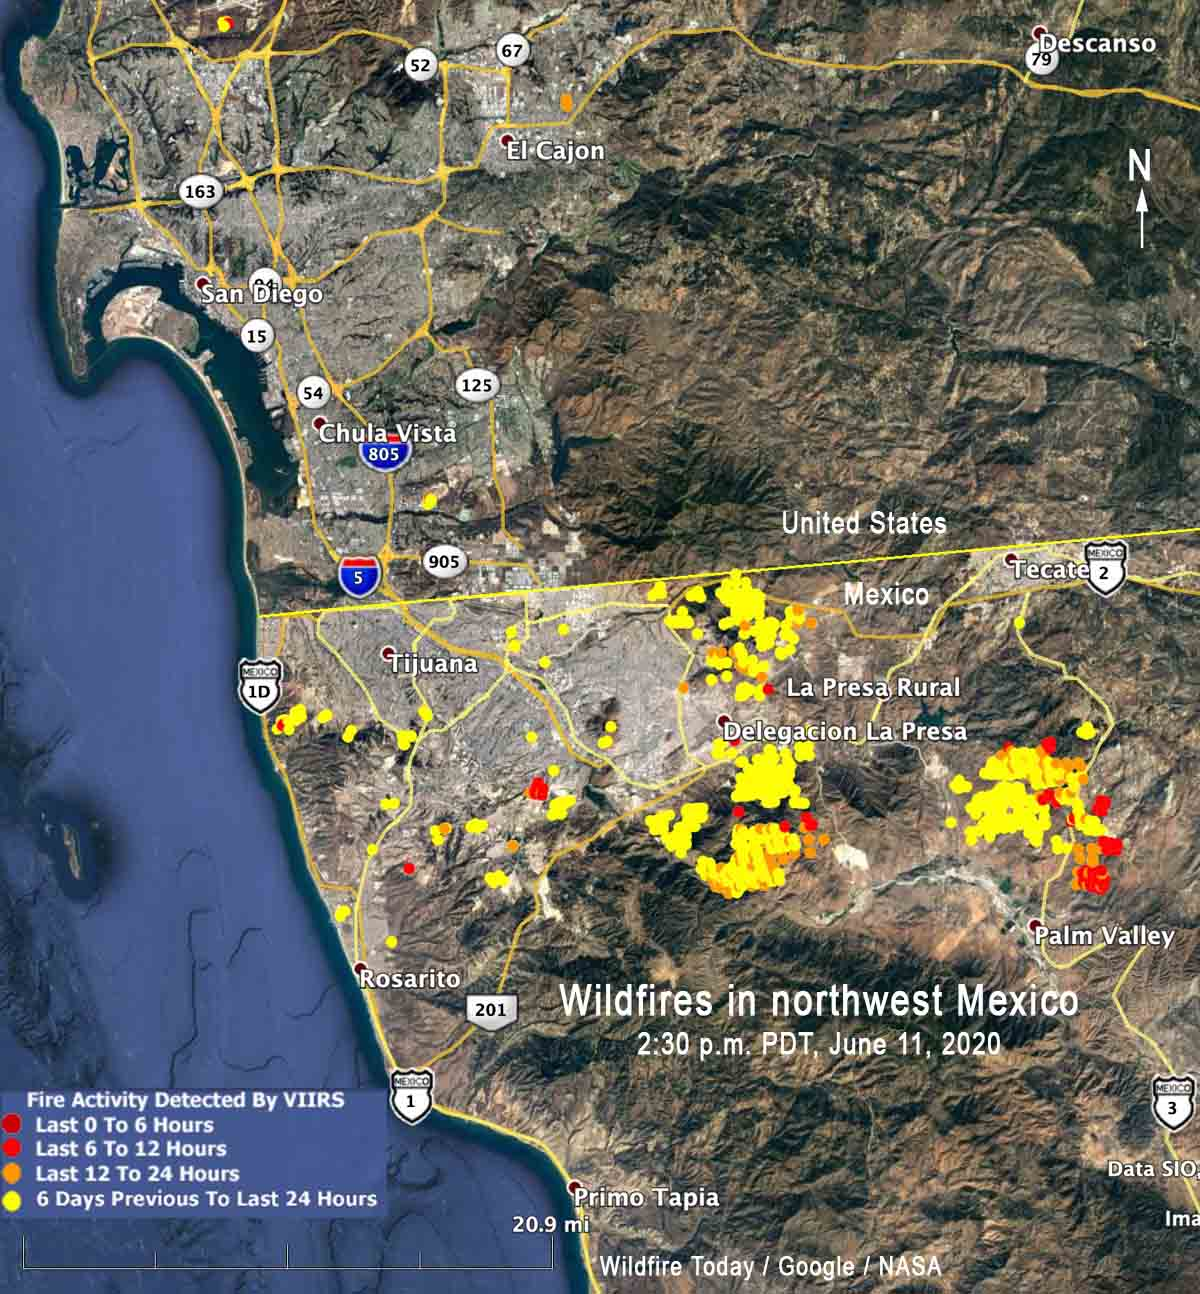 wildfires in northwest Mexico fires